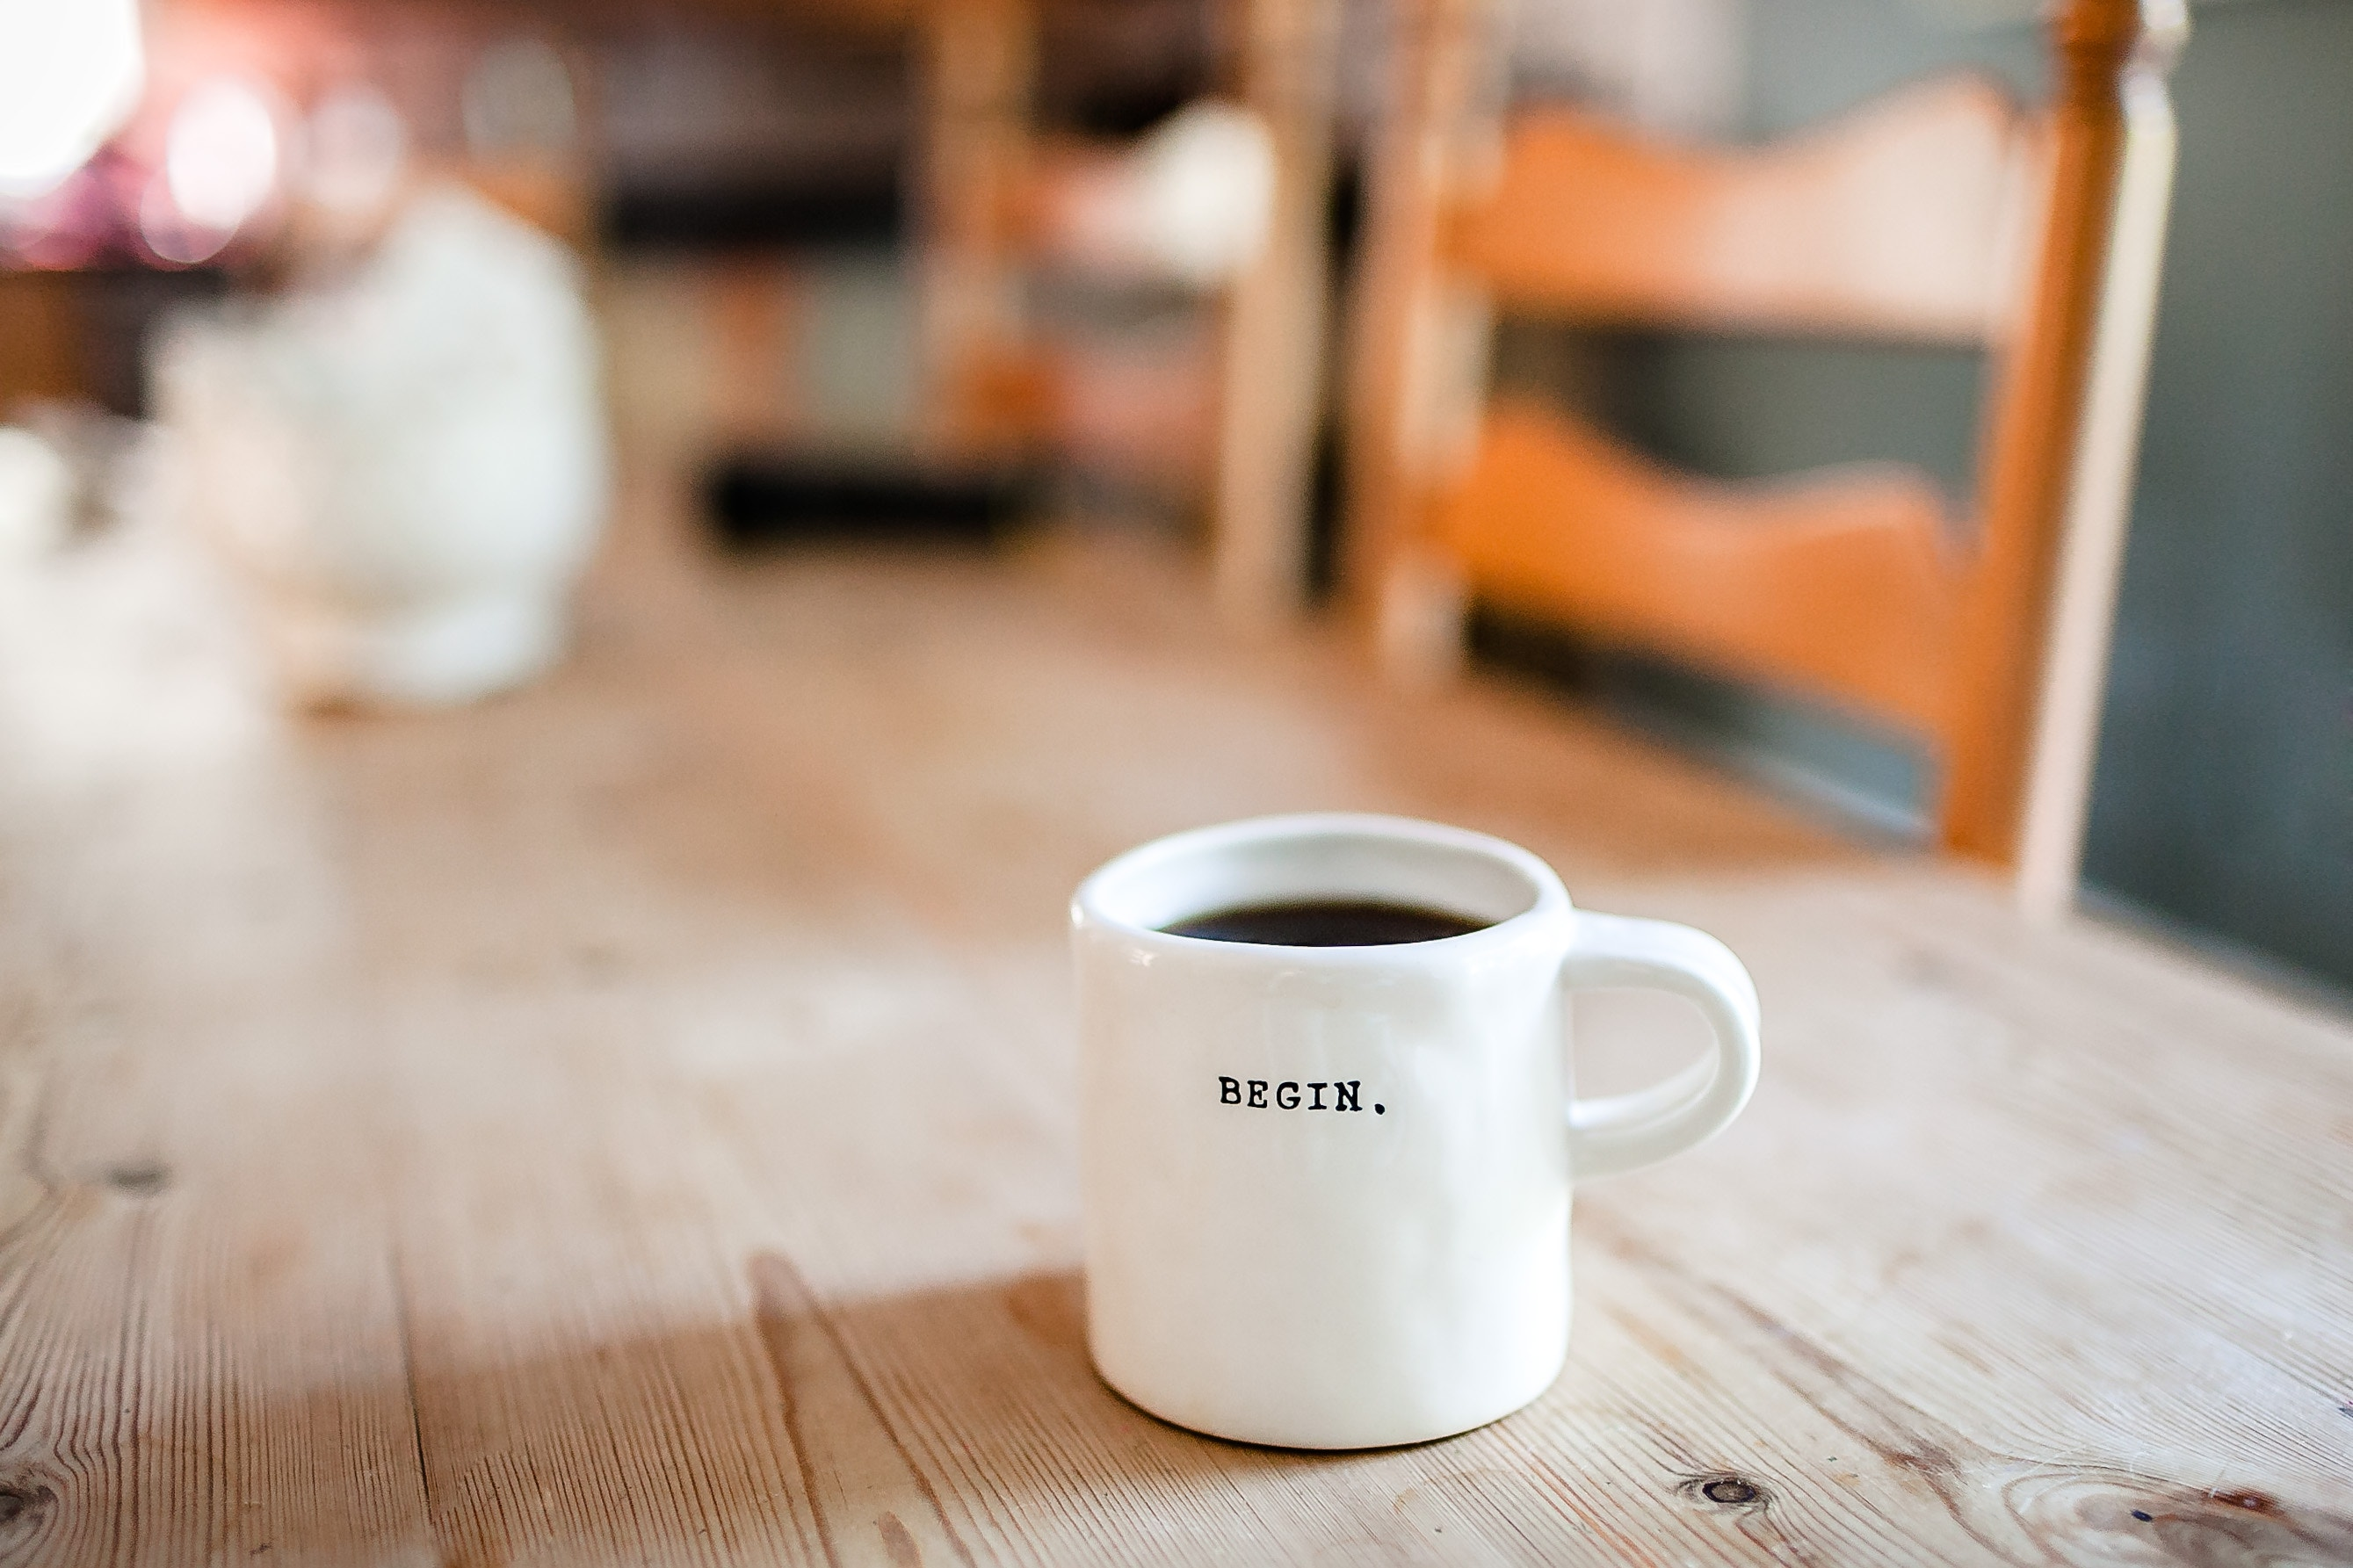 Coffee.Mug.danielle-macinnes-222441-unsplash